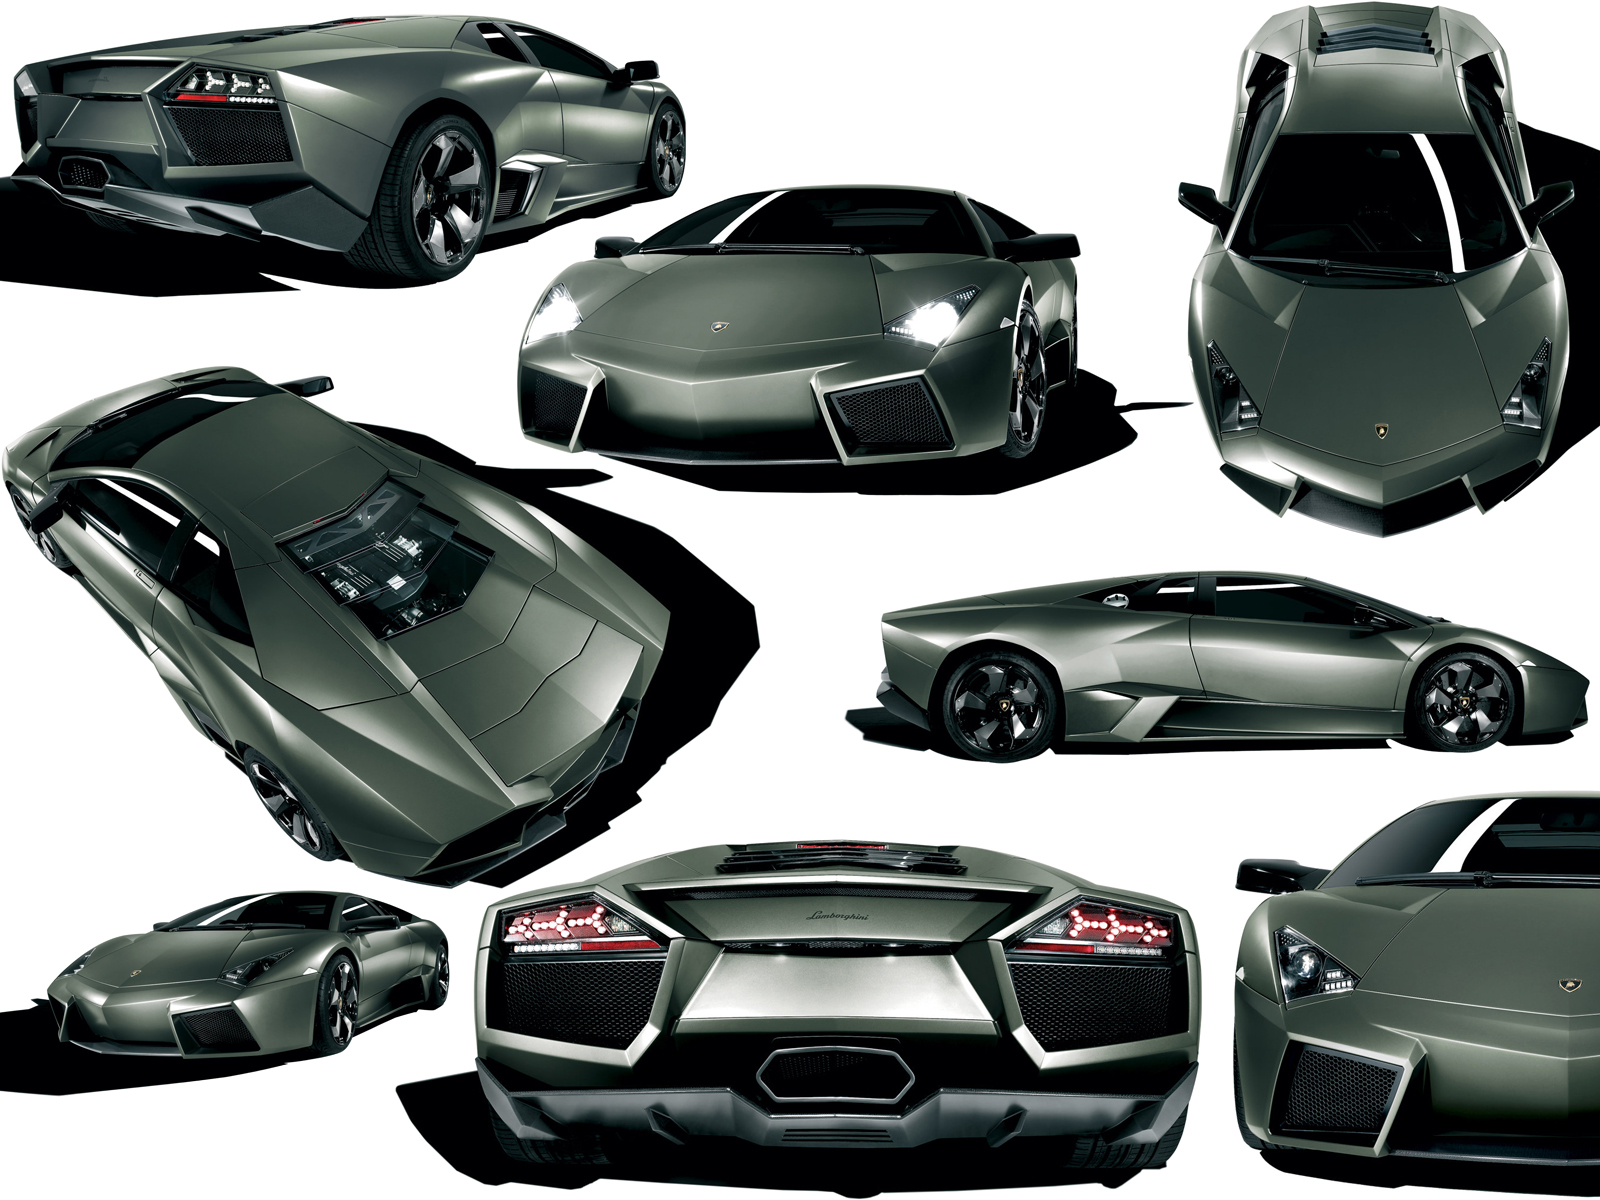 Cars And Only Cars Lamborghini Reventon Wallpaper 1600x1200